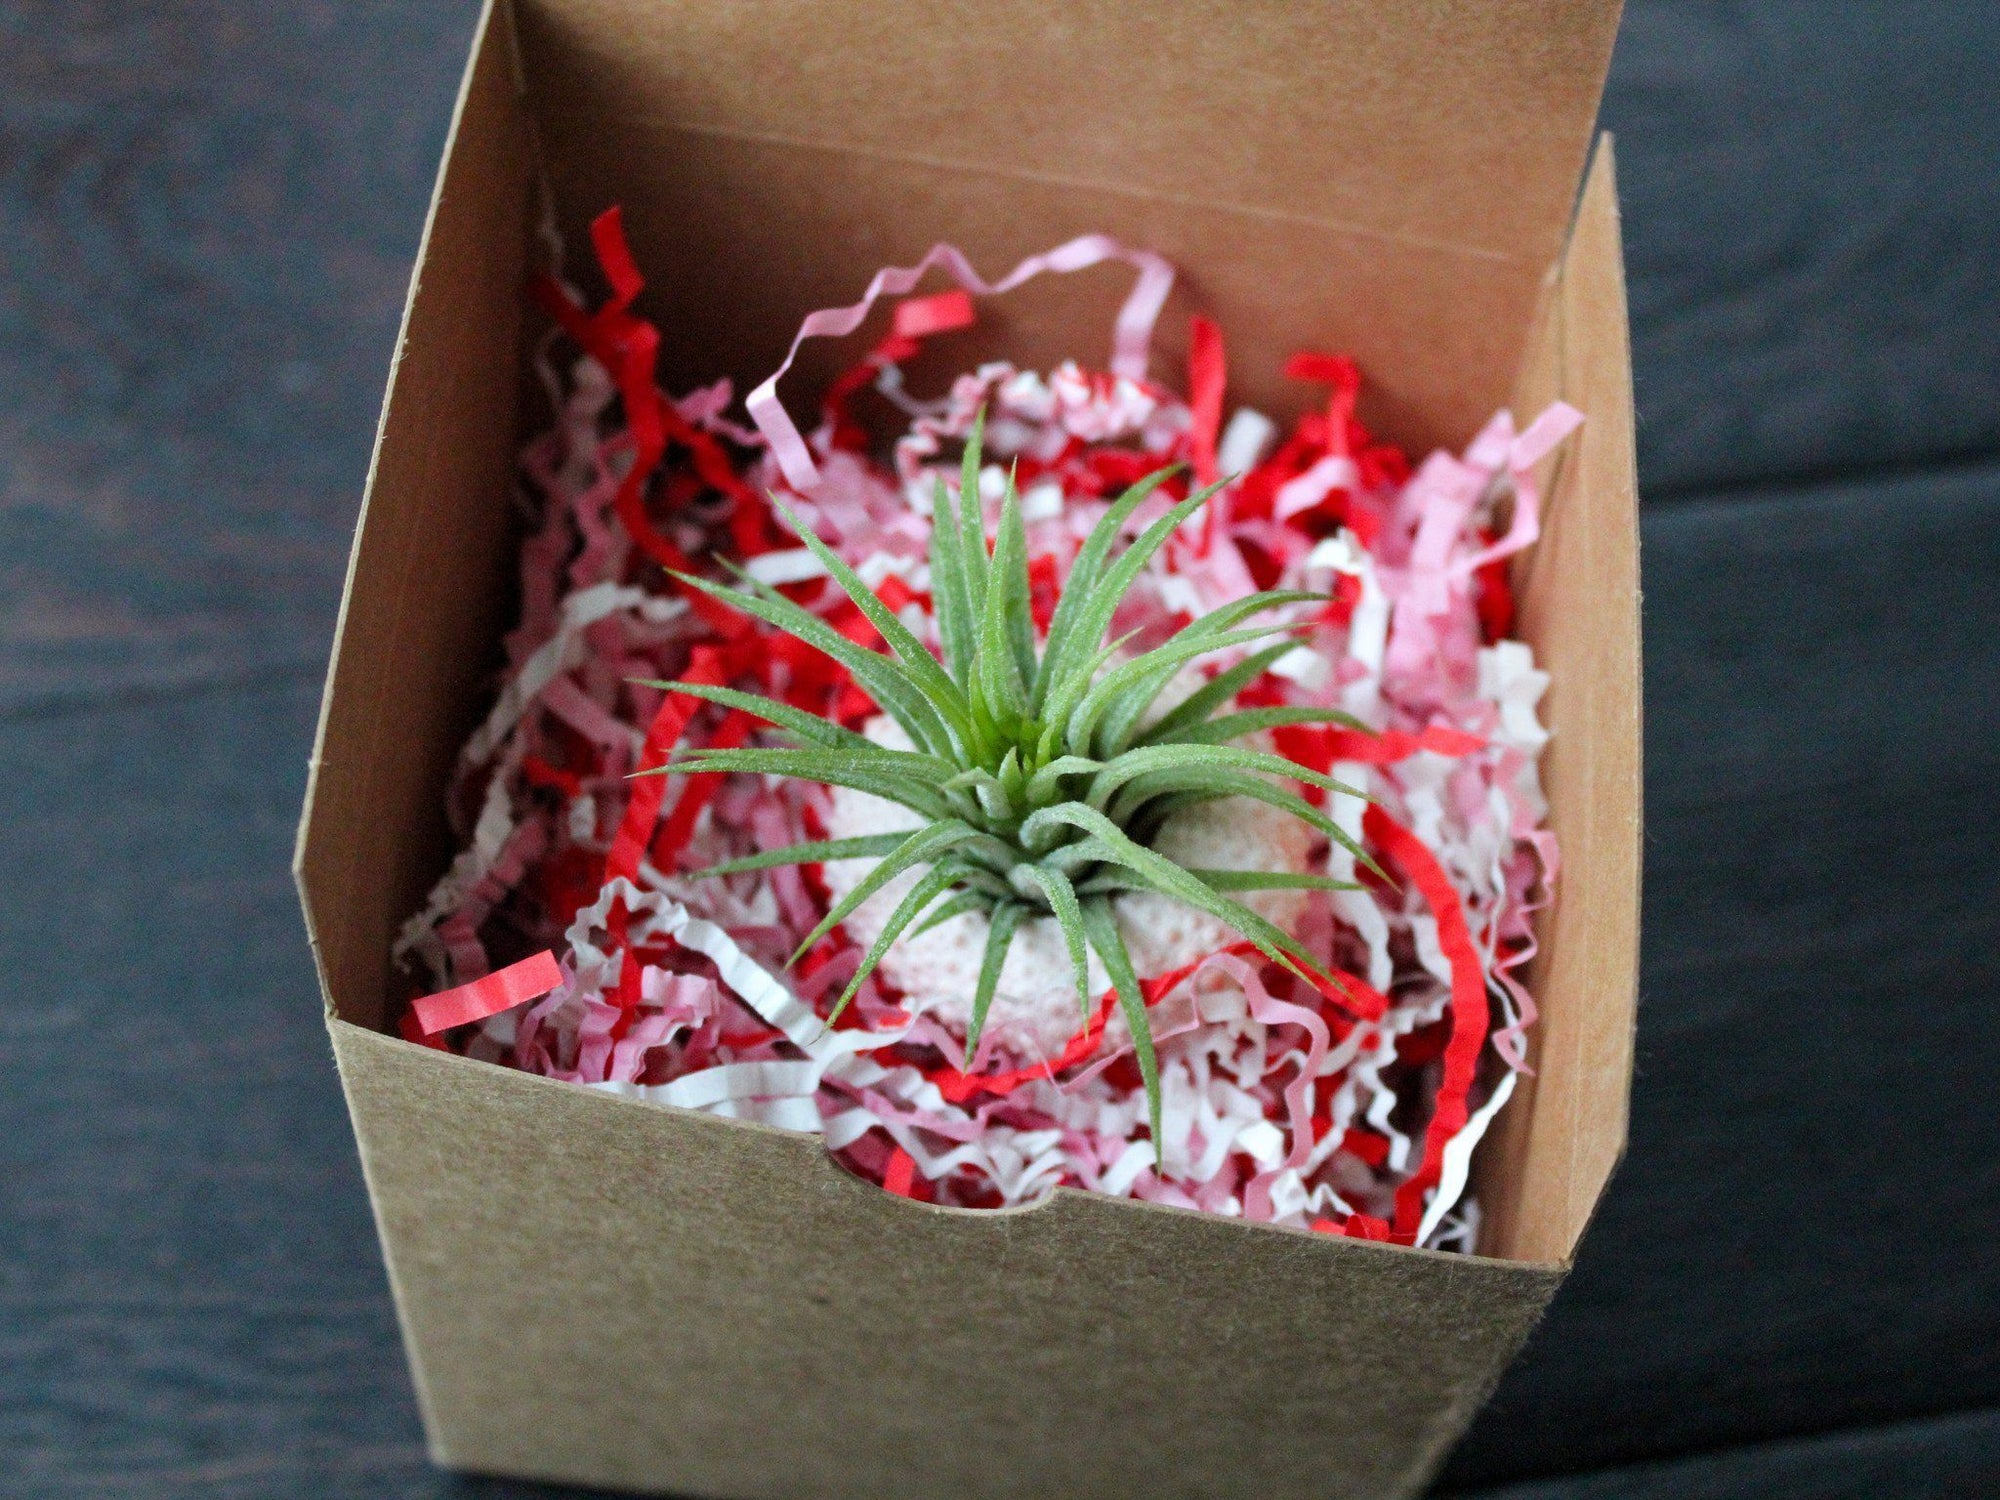 Sending Some Air Plant Love